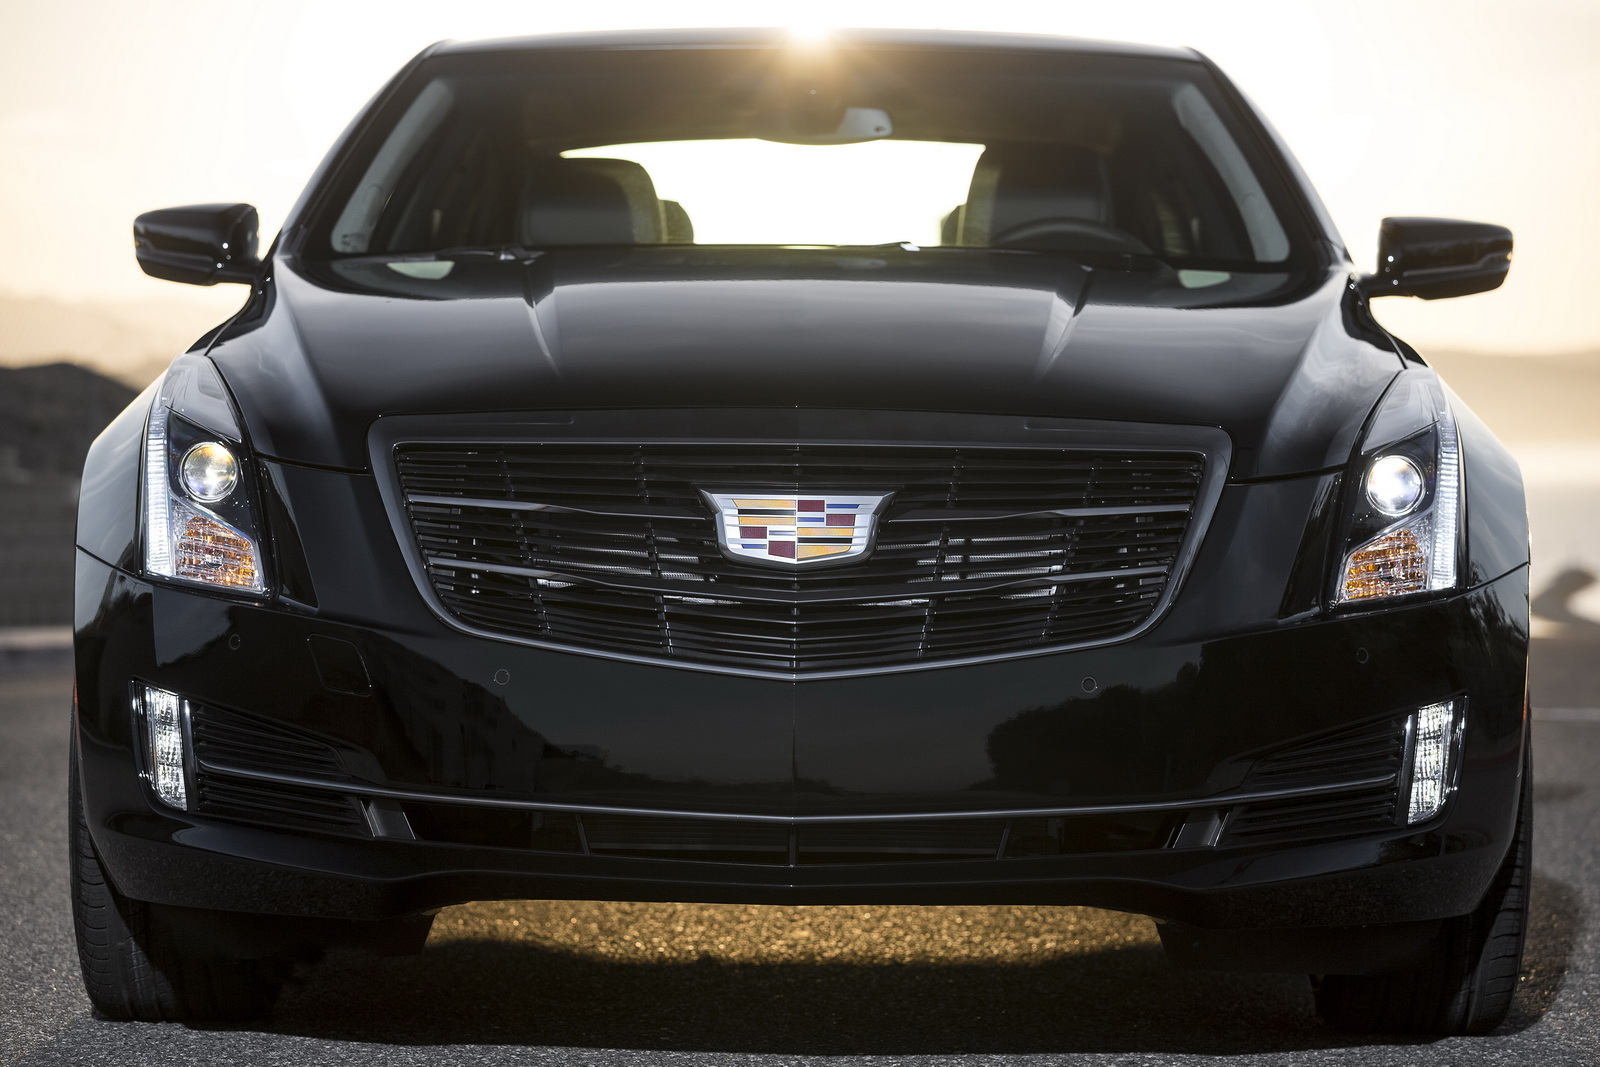 Cadillac Launches Black Chrome Package For ATS, CTS ...